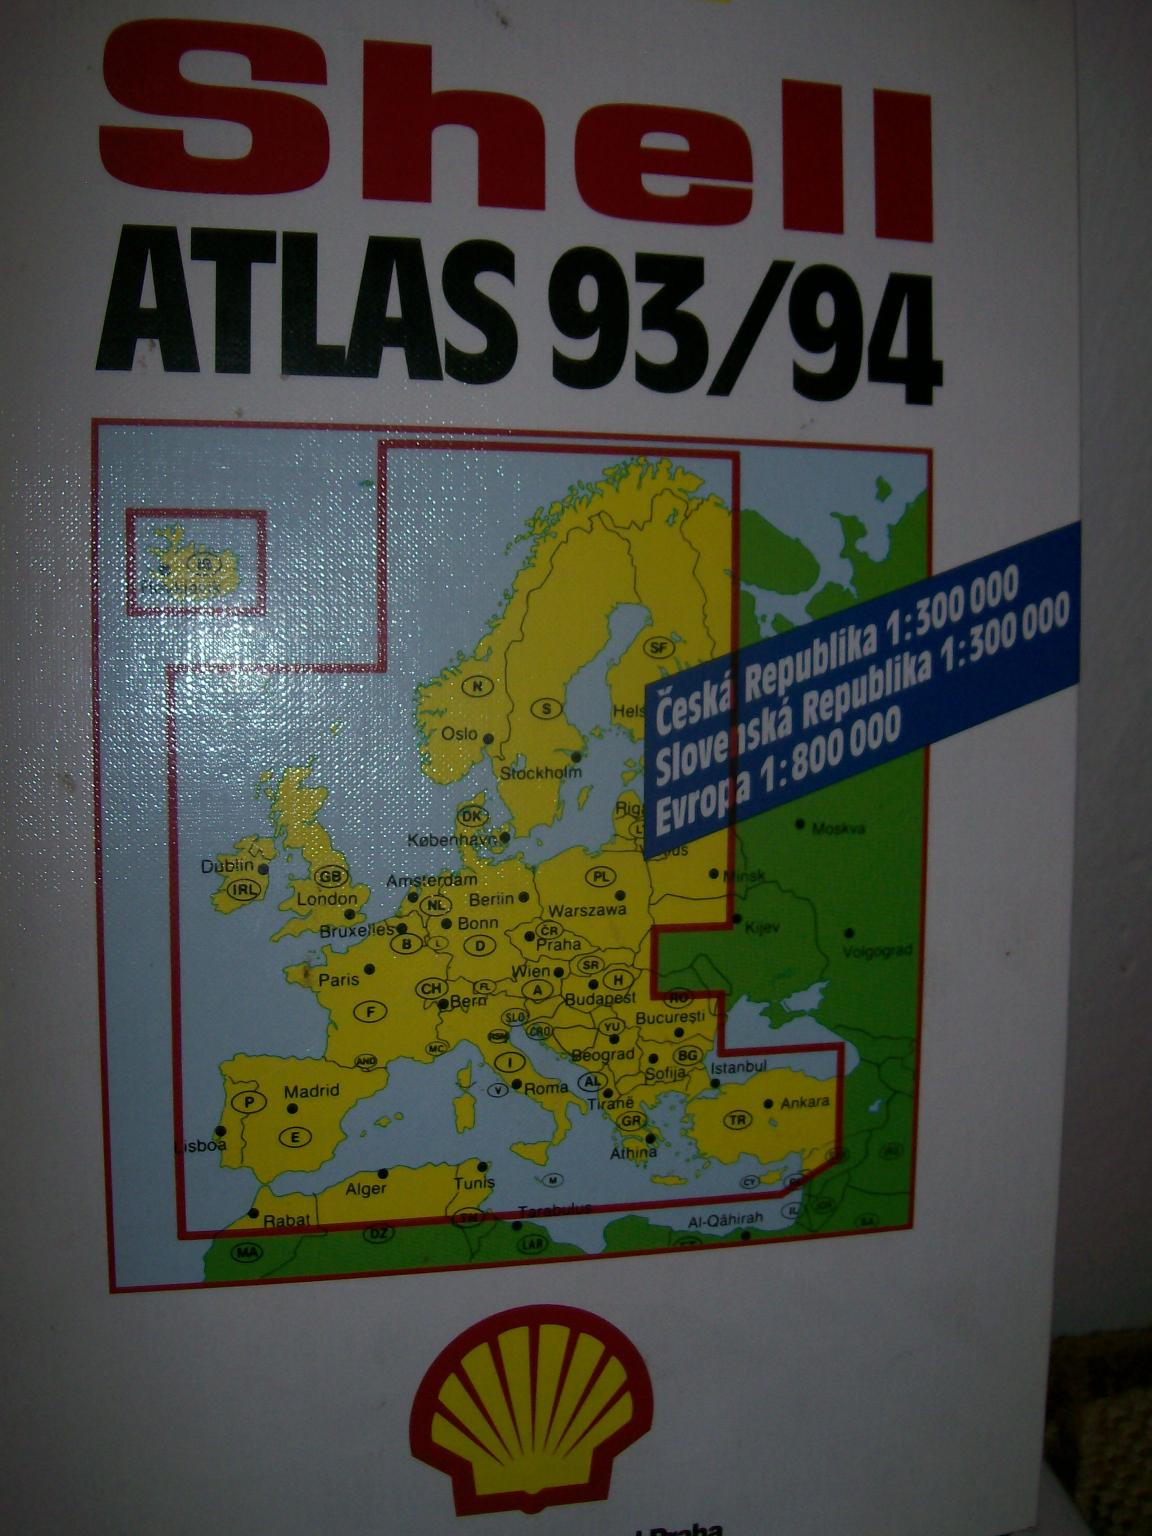 euro atlas SHELL